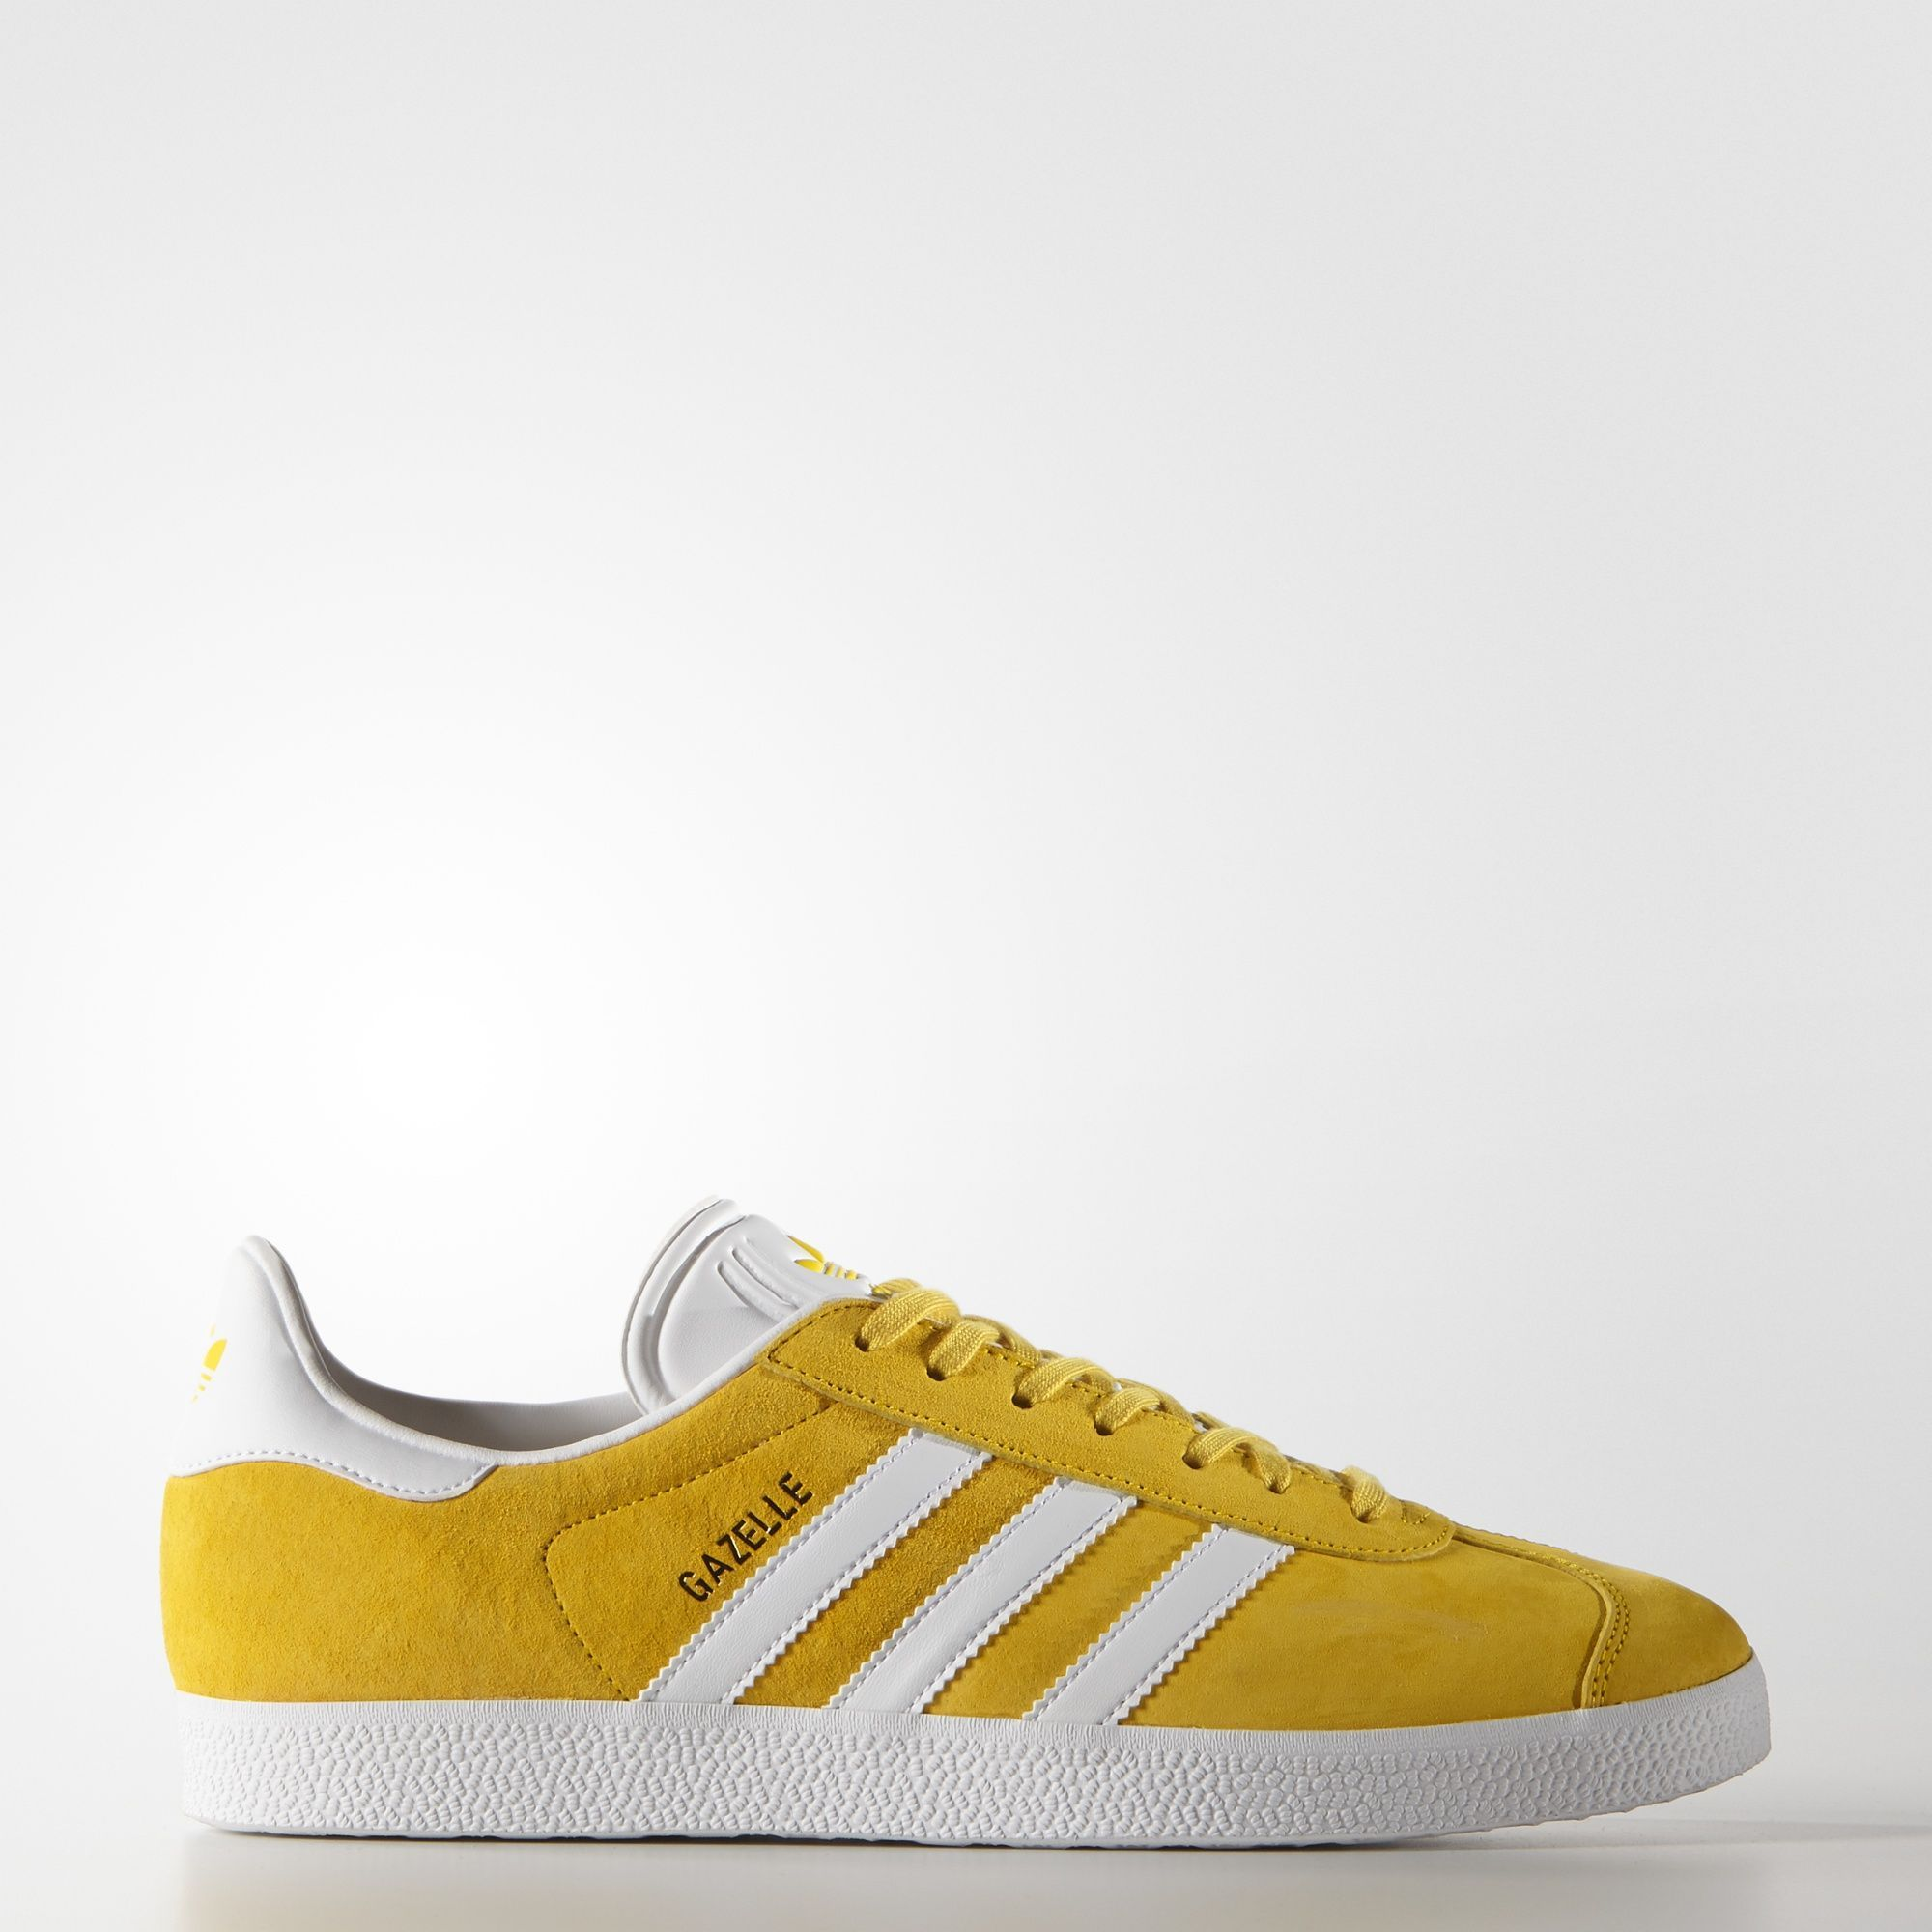 adidas - Gazelle Shoes yellow (pinned color) size 8.5 c0e6f4b6014